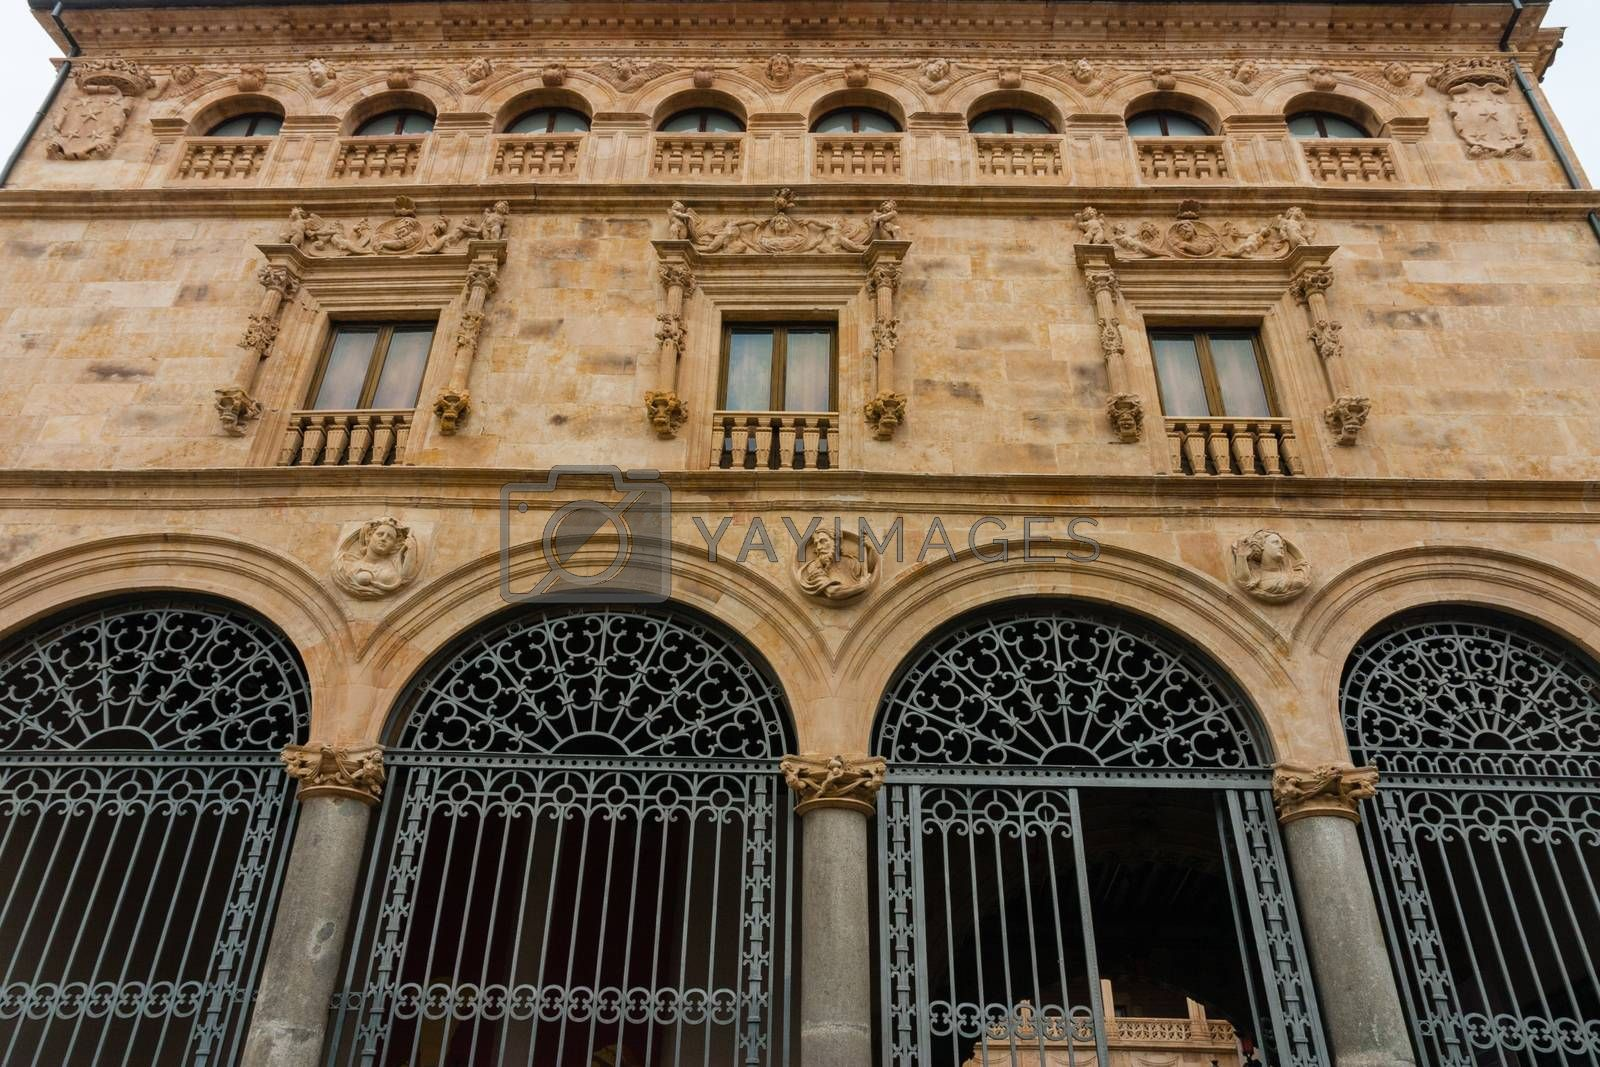 Main facade of La Salina Palace in Salamanca by imagsan